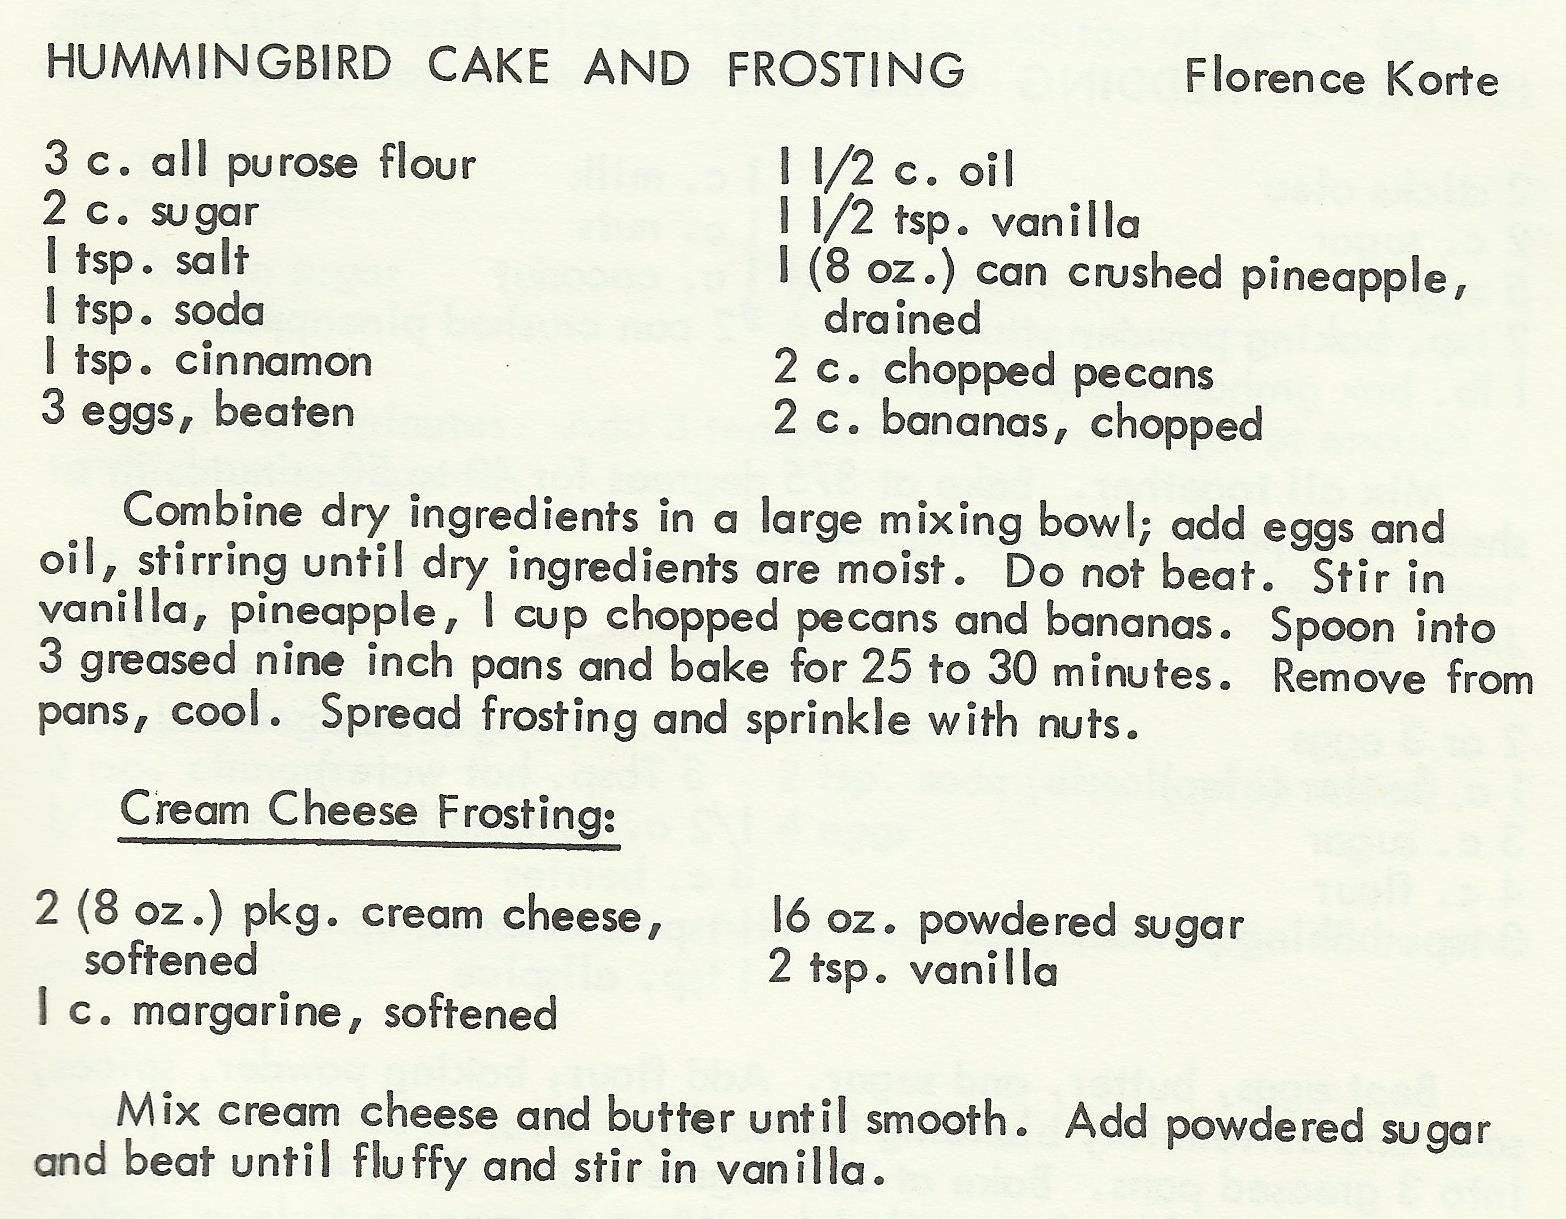 Hummingbird Cake and Frosting